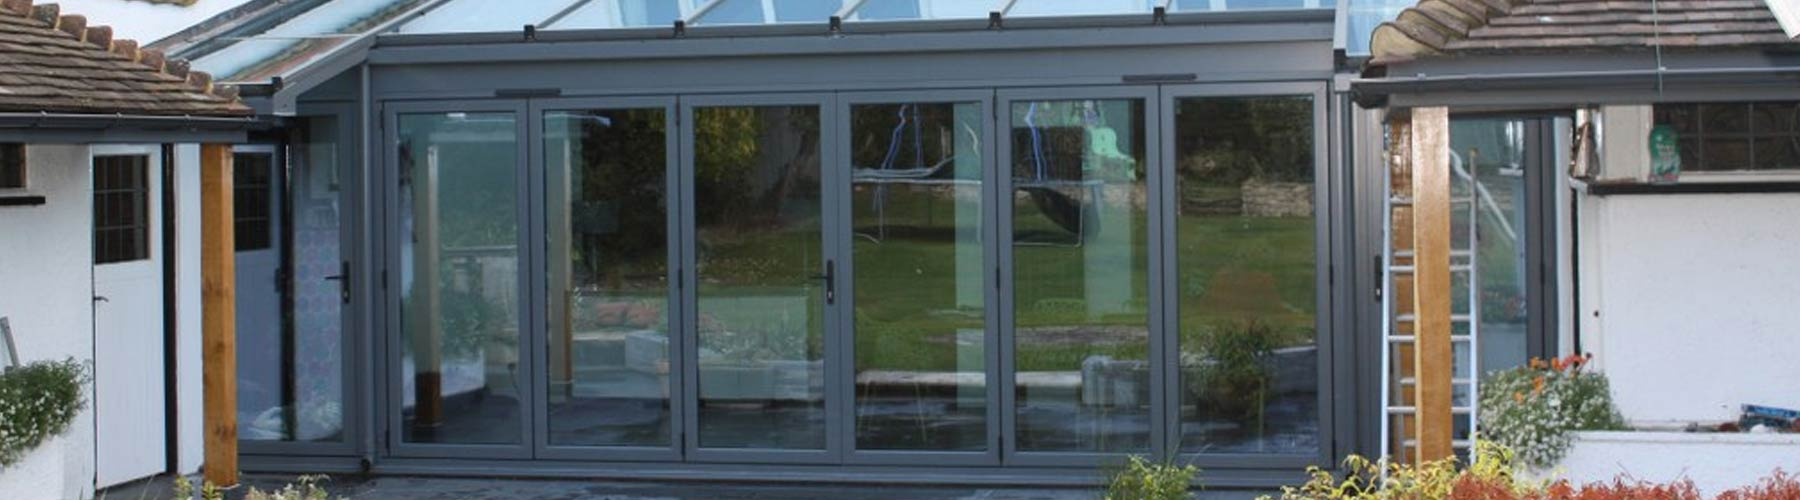 Slimfold A10 Aluminium Bifold Doors installed in Warrington.